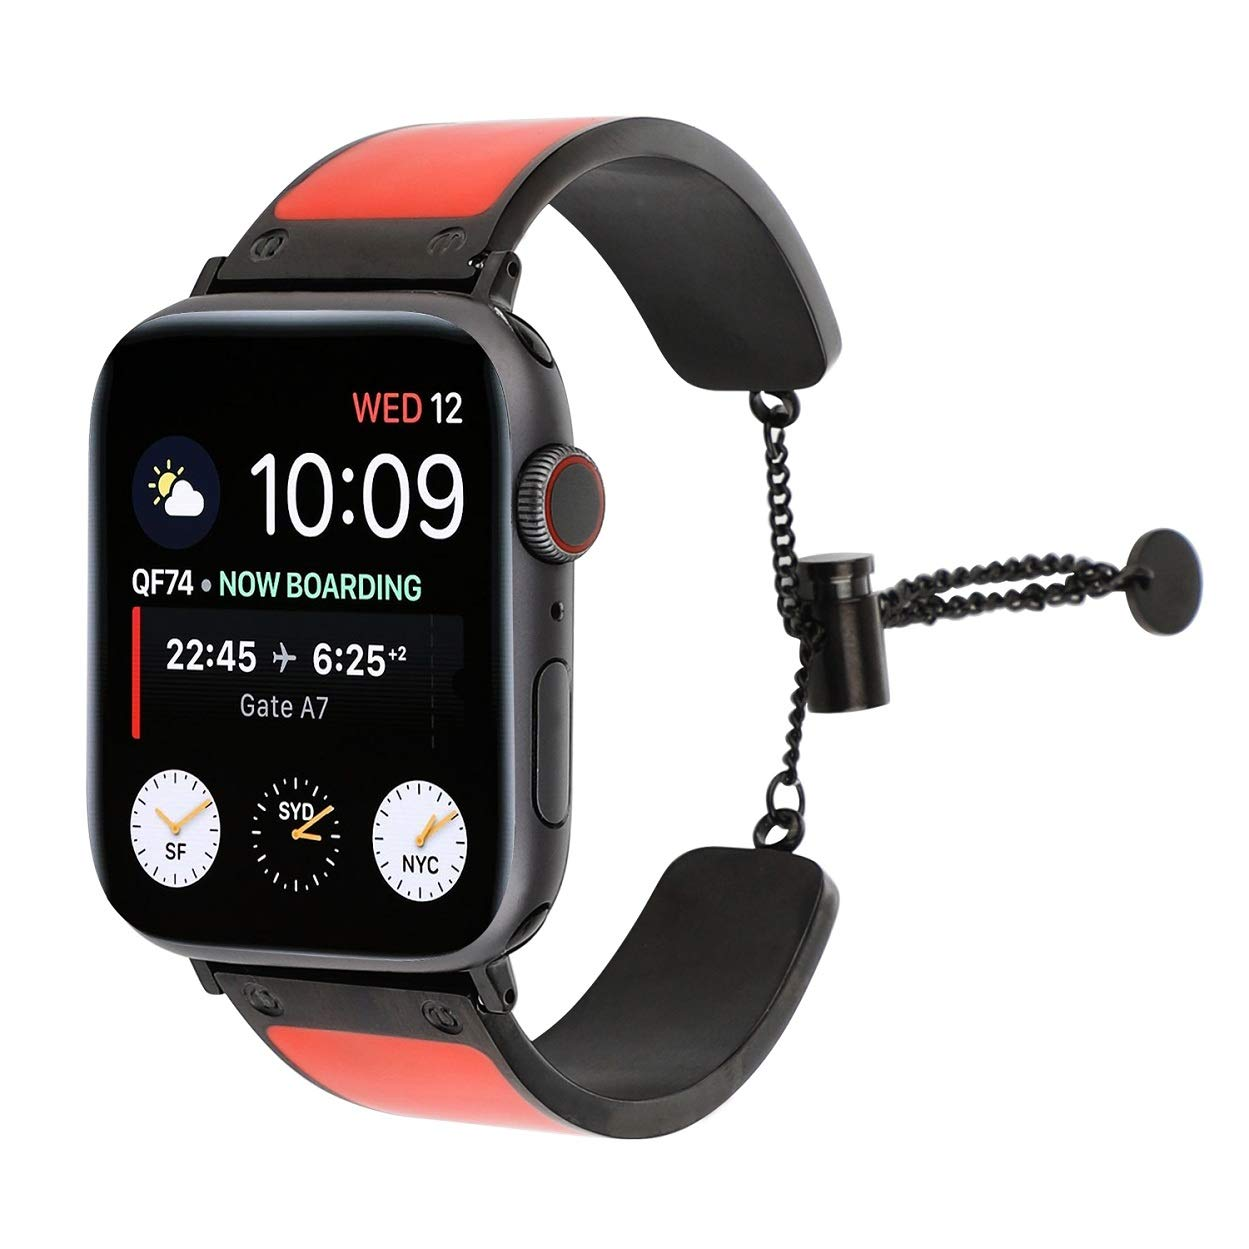 Juzzhou Compatible with Watch Band Apple Watch iWatch Series 1 2 3 4 Wriststrap Wristband Bracelet Wrist Strap Guard Replacement with Metal Adapter Buckle for Woman Girls Lady Boy Red 38mm 40mm